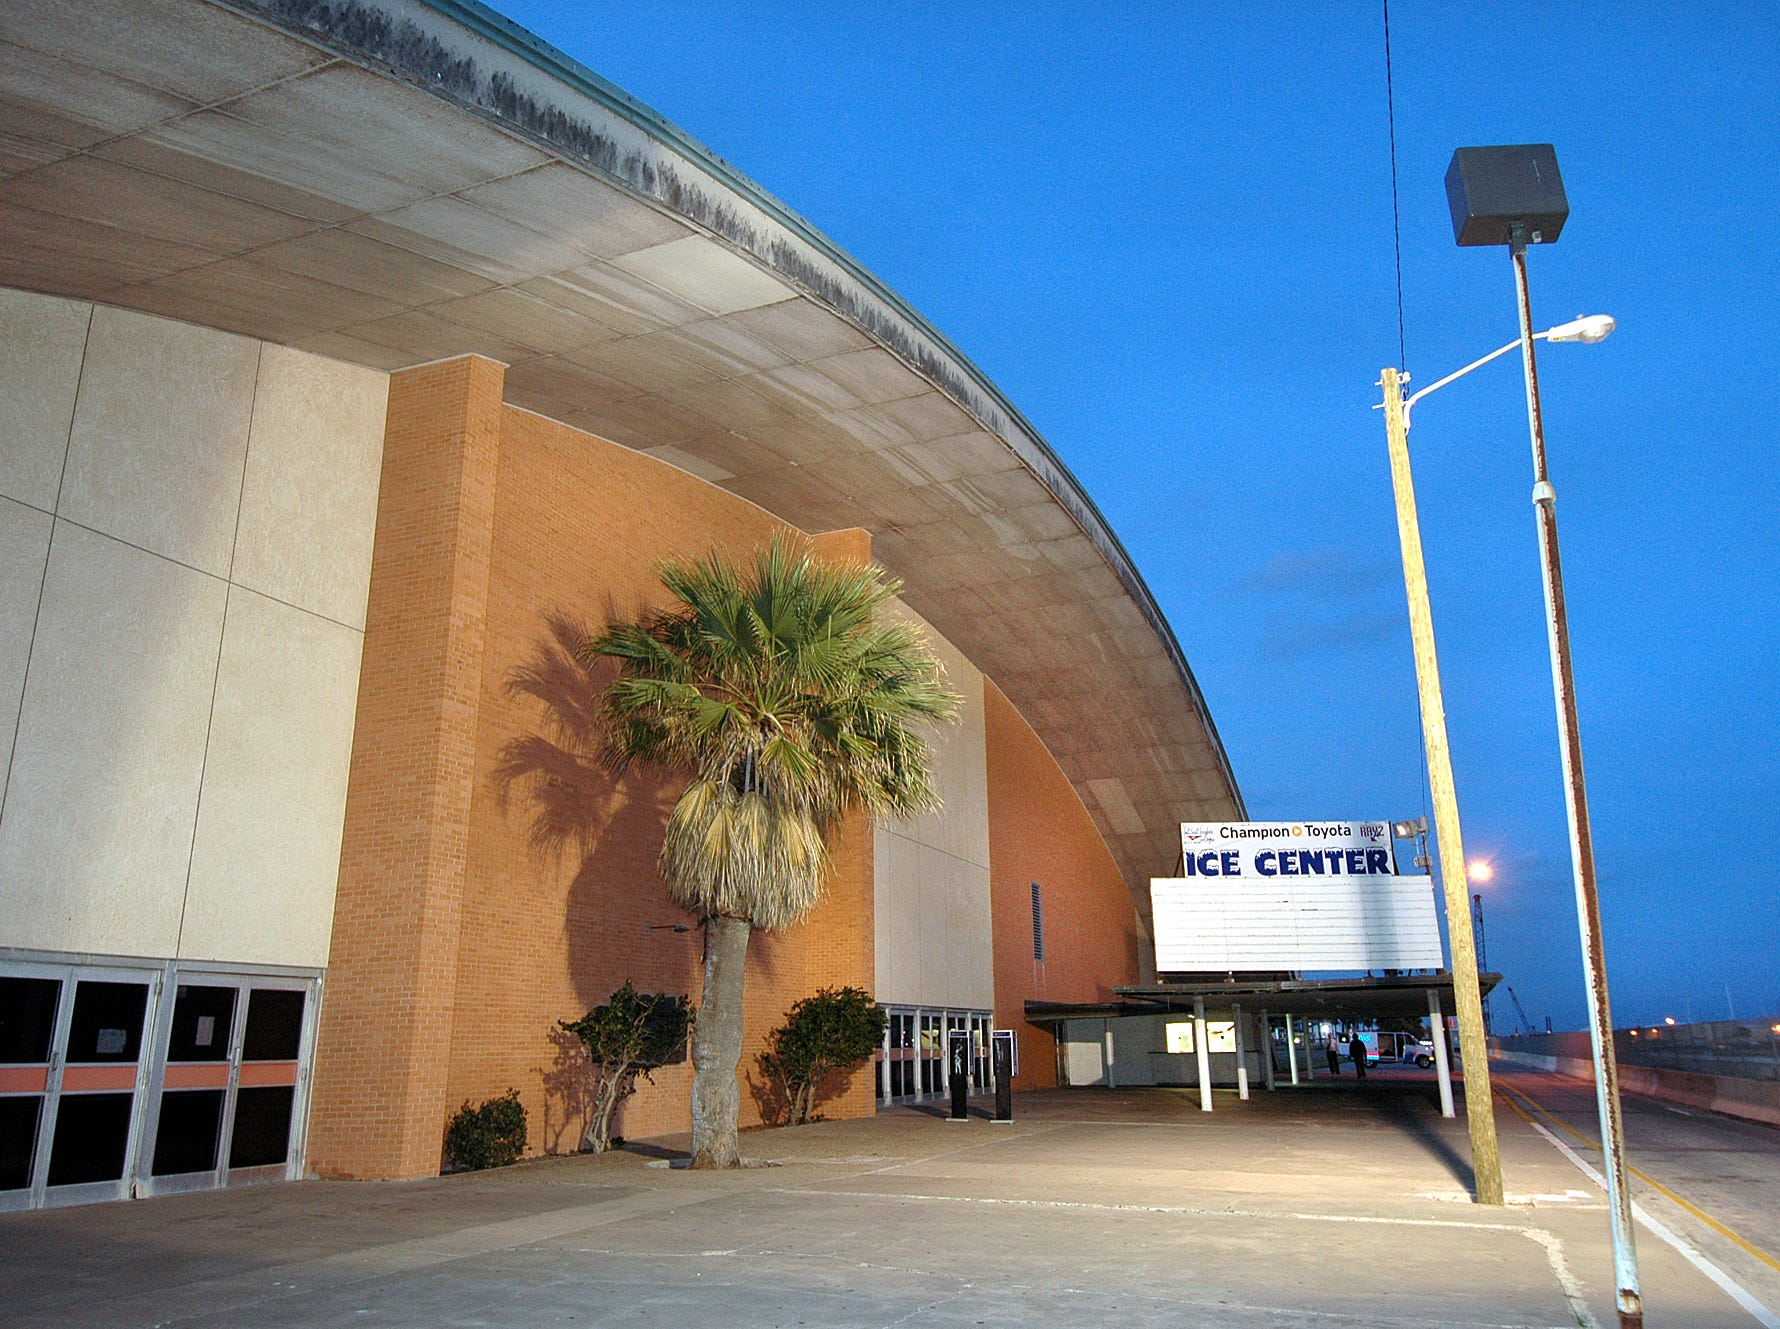 This view is of the east end of Memorial Coliseum after sunset with a little twilight left in the sky on Jan. 31, 2006.